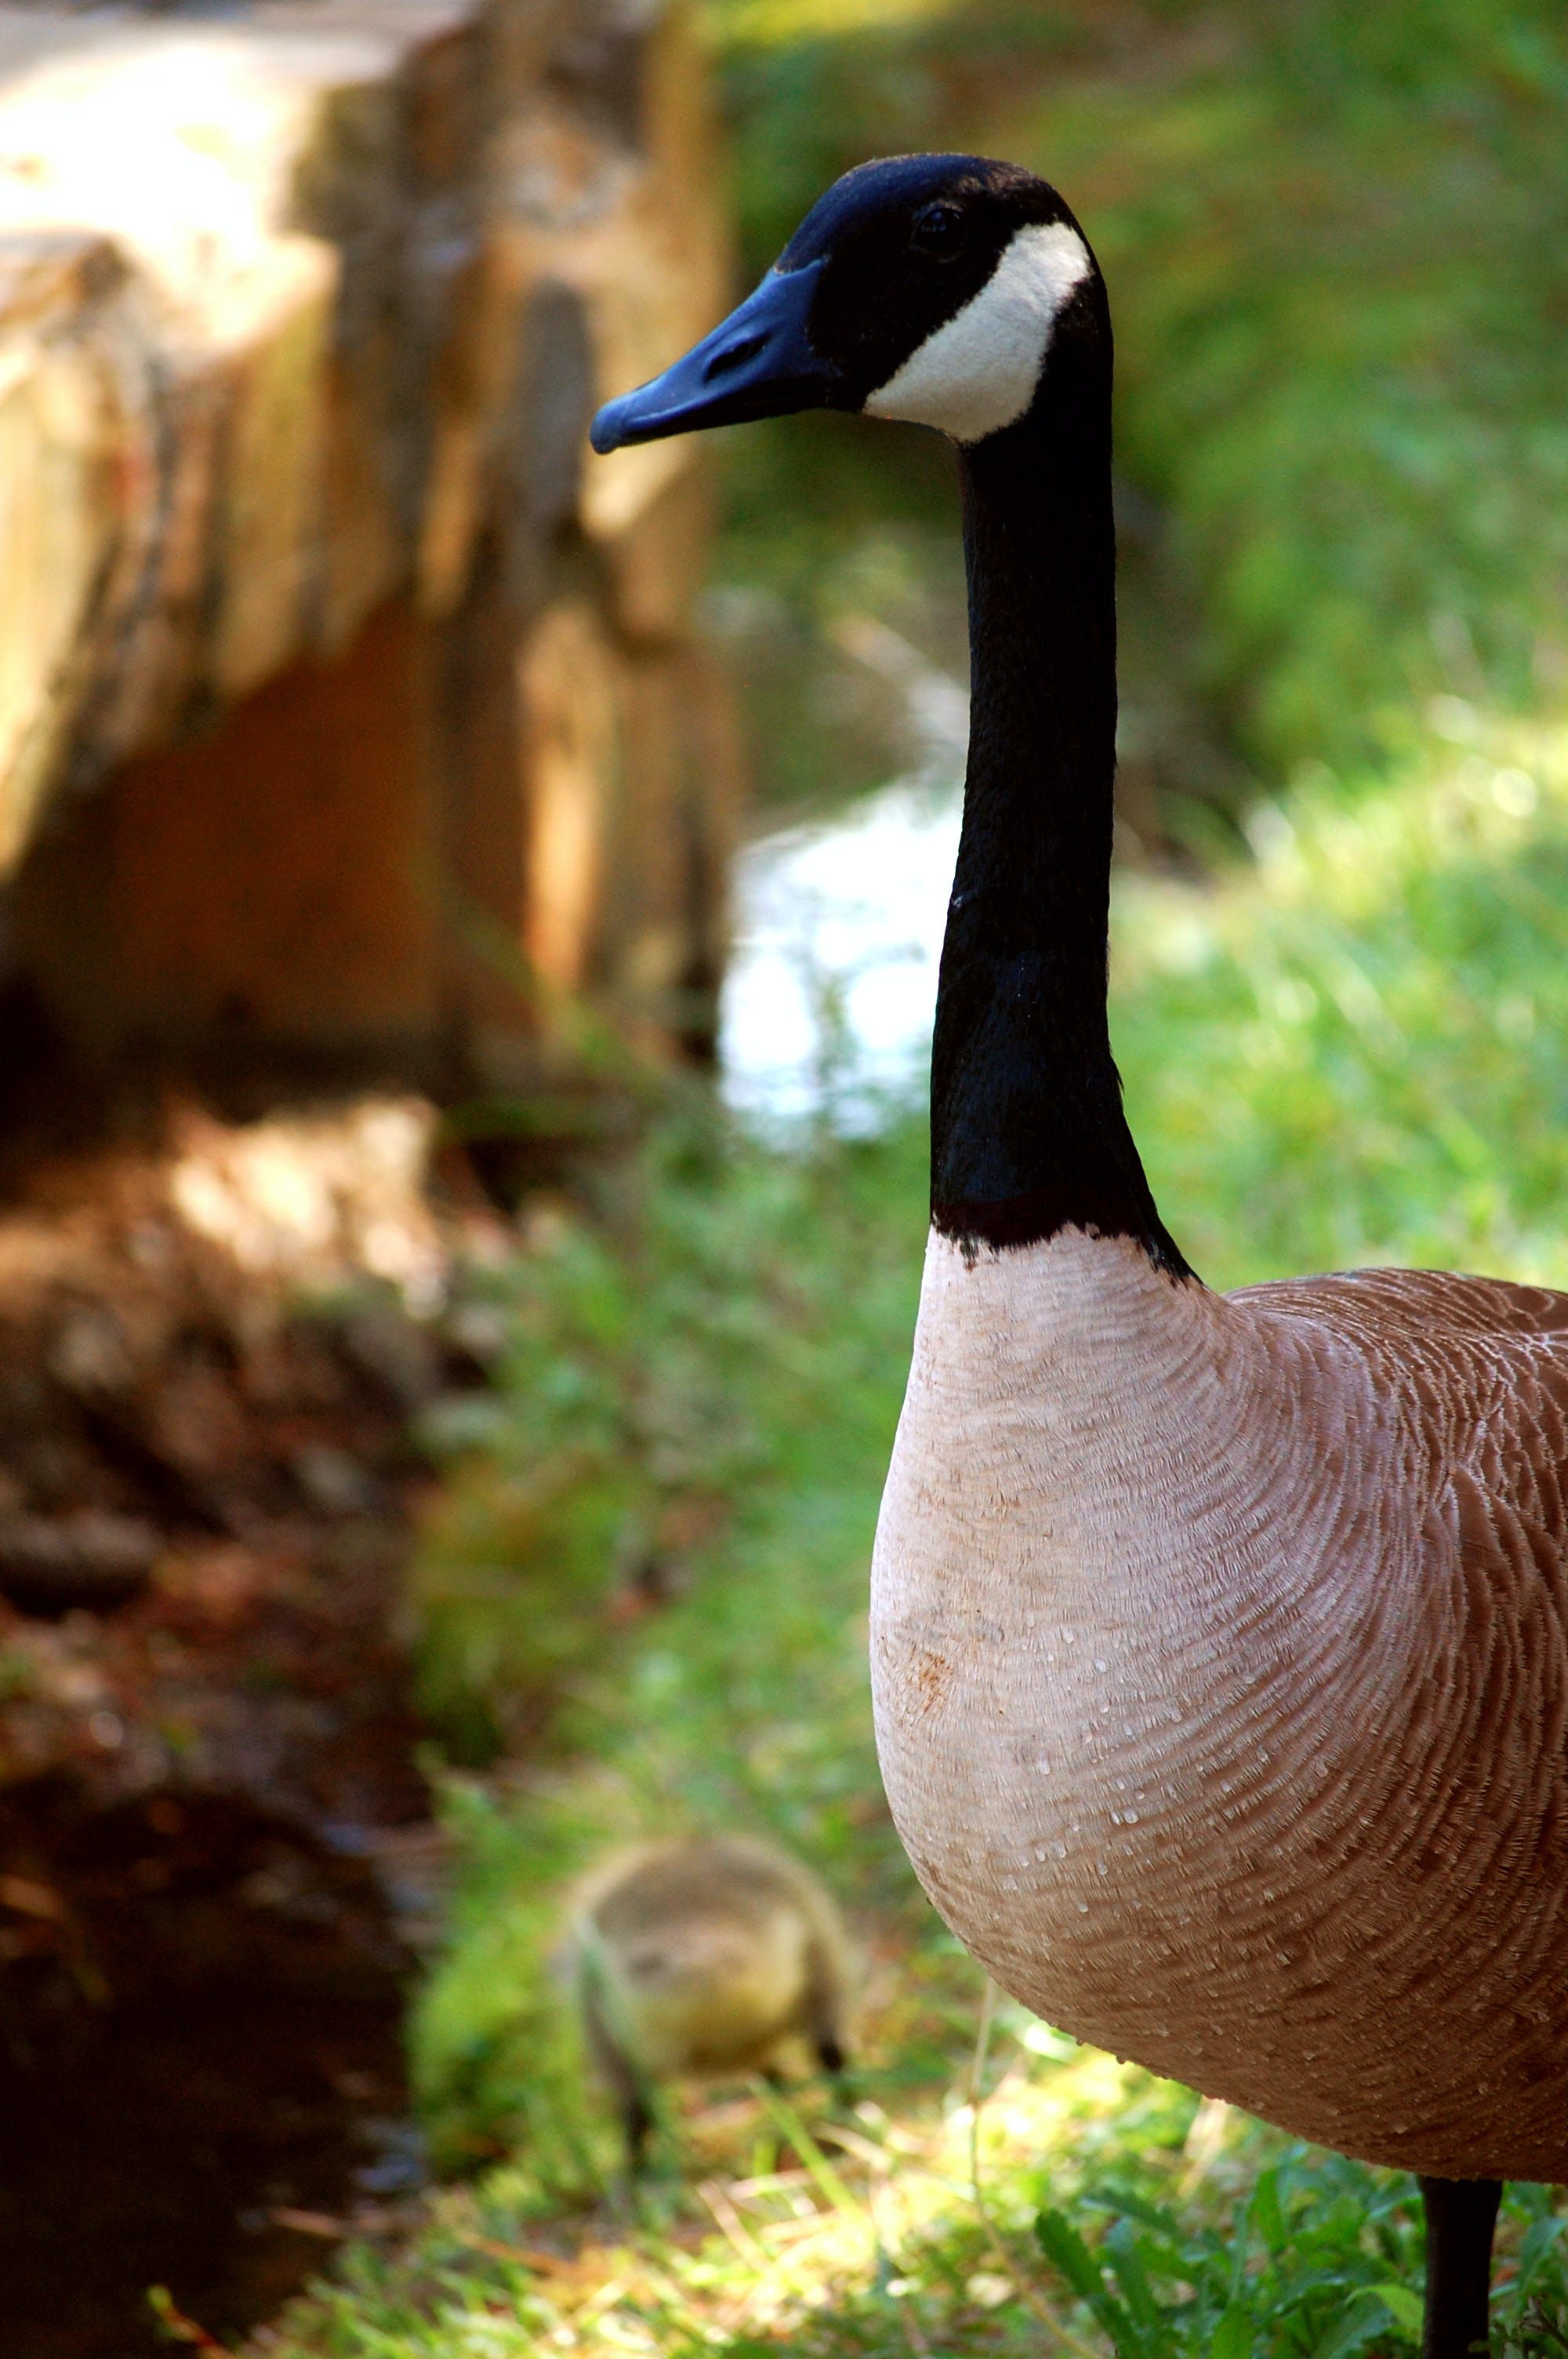 Brown Black and White Goose in Tilt Shift Lens